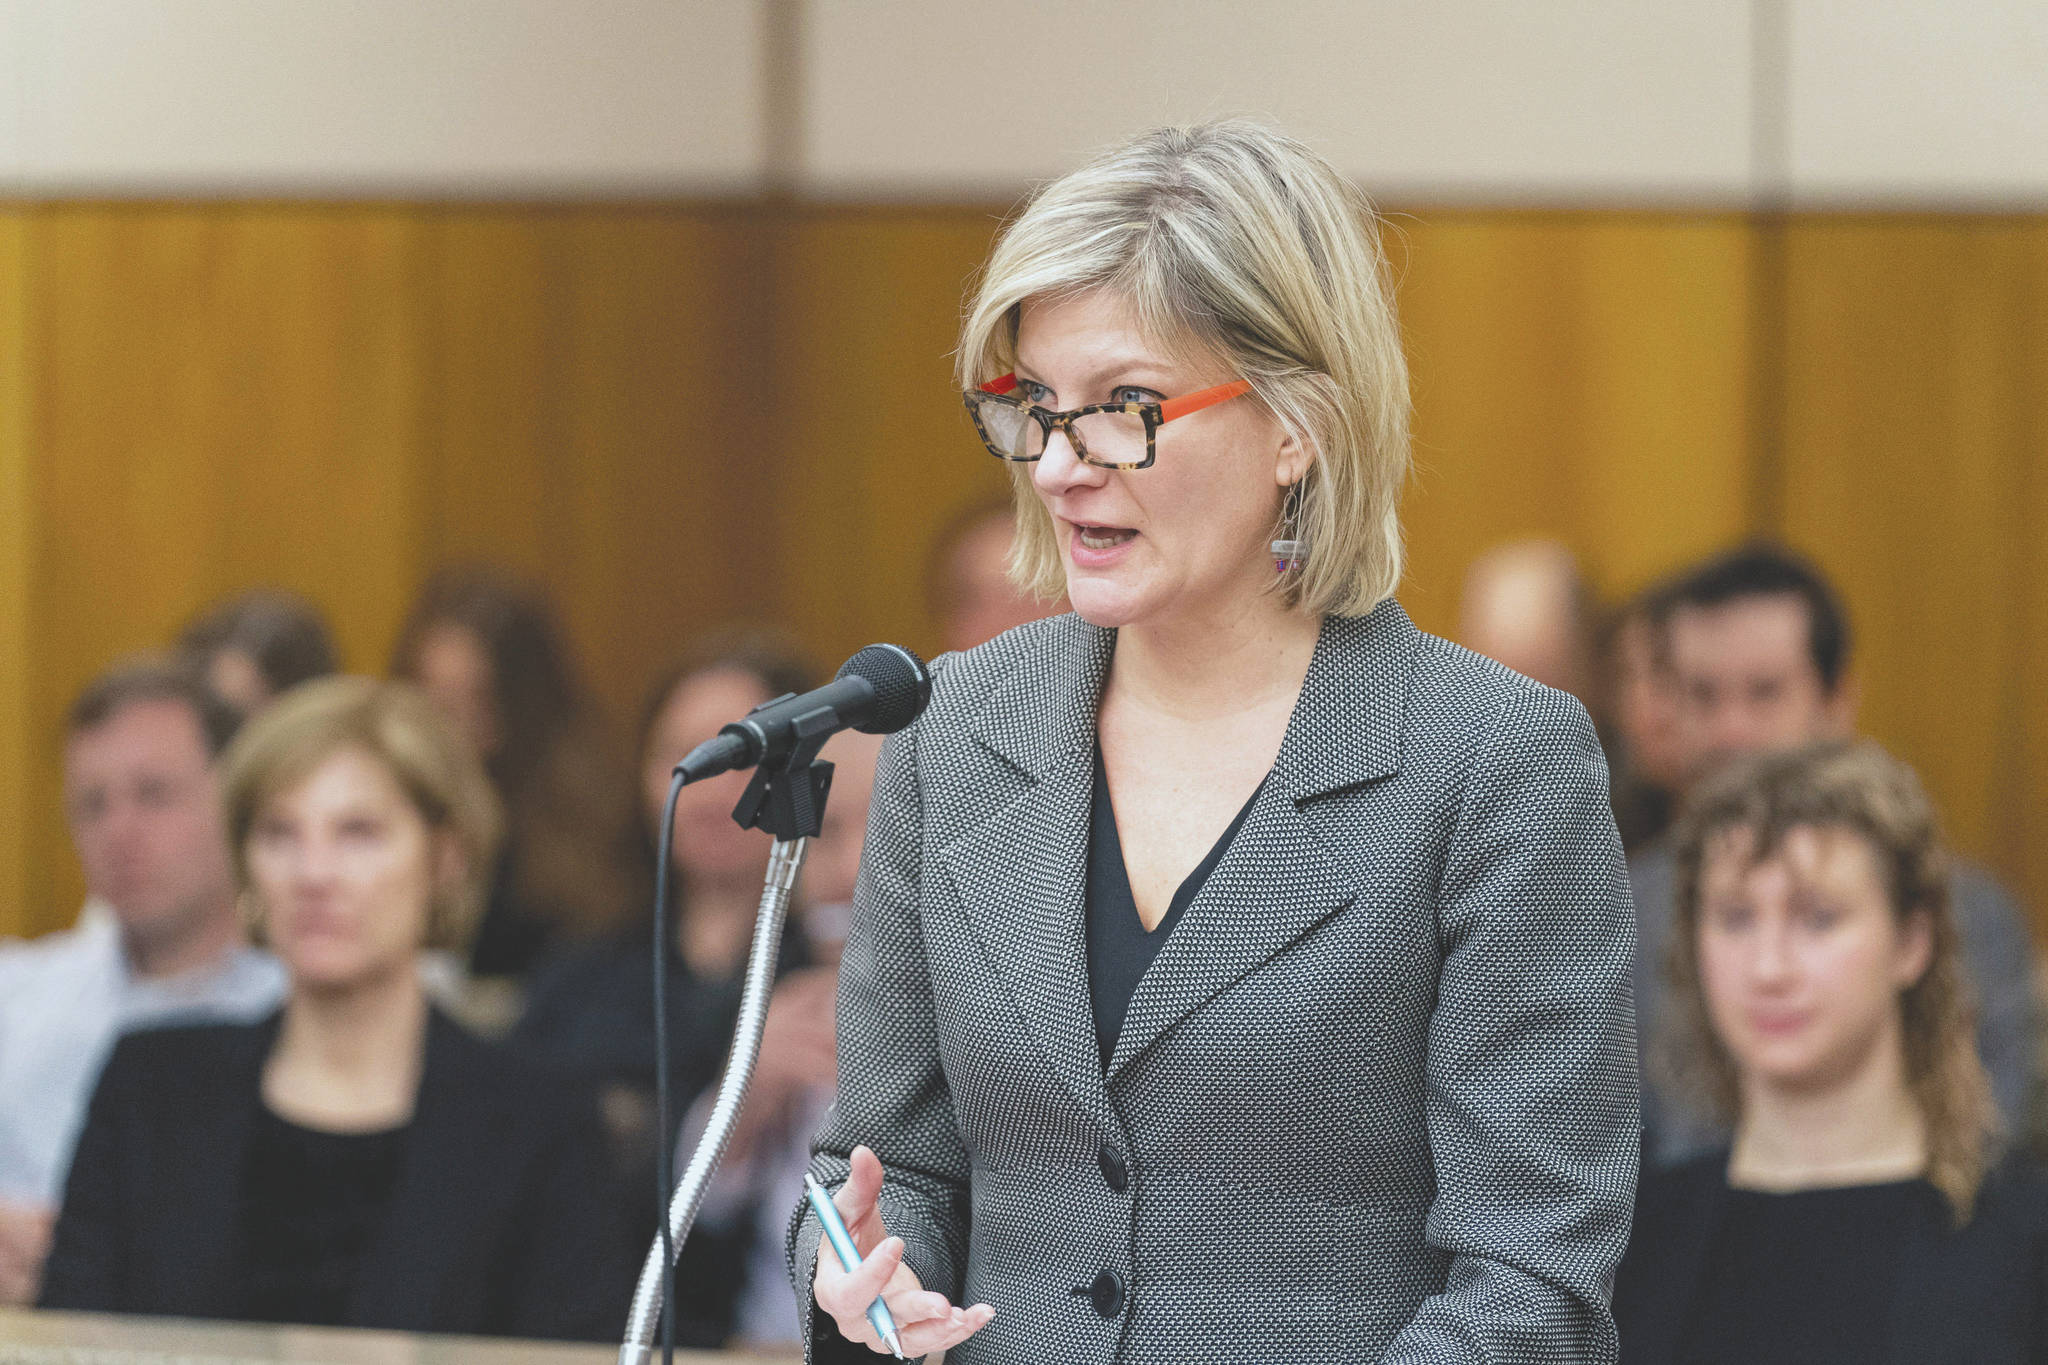 Former Alaska Attorney General Jahna Lindemuth argues on behalf of the Recall Dunleavy campaign Friday, Jan. 10, 2020 in Alaska Superior Court. The campaign alleges that the state improperly rejected one step of their recall effort. Judge Eric Aarseth ruled that an effort to recall Republican Gov. Mike Dunleavy may proceed, a decision that is expected to be appealed. The decision followed arguments in the case and came two months after Gail Fenumiai, director of the state Division of Elections, rejected a bid to advance the recall effort. (Loren Holmes/Anchorage Daily News via AP)